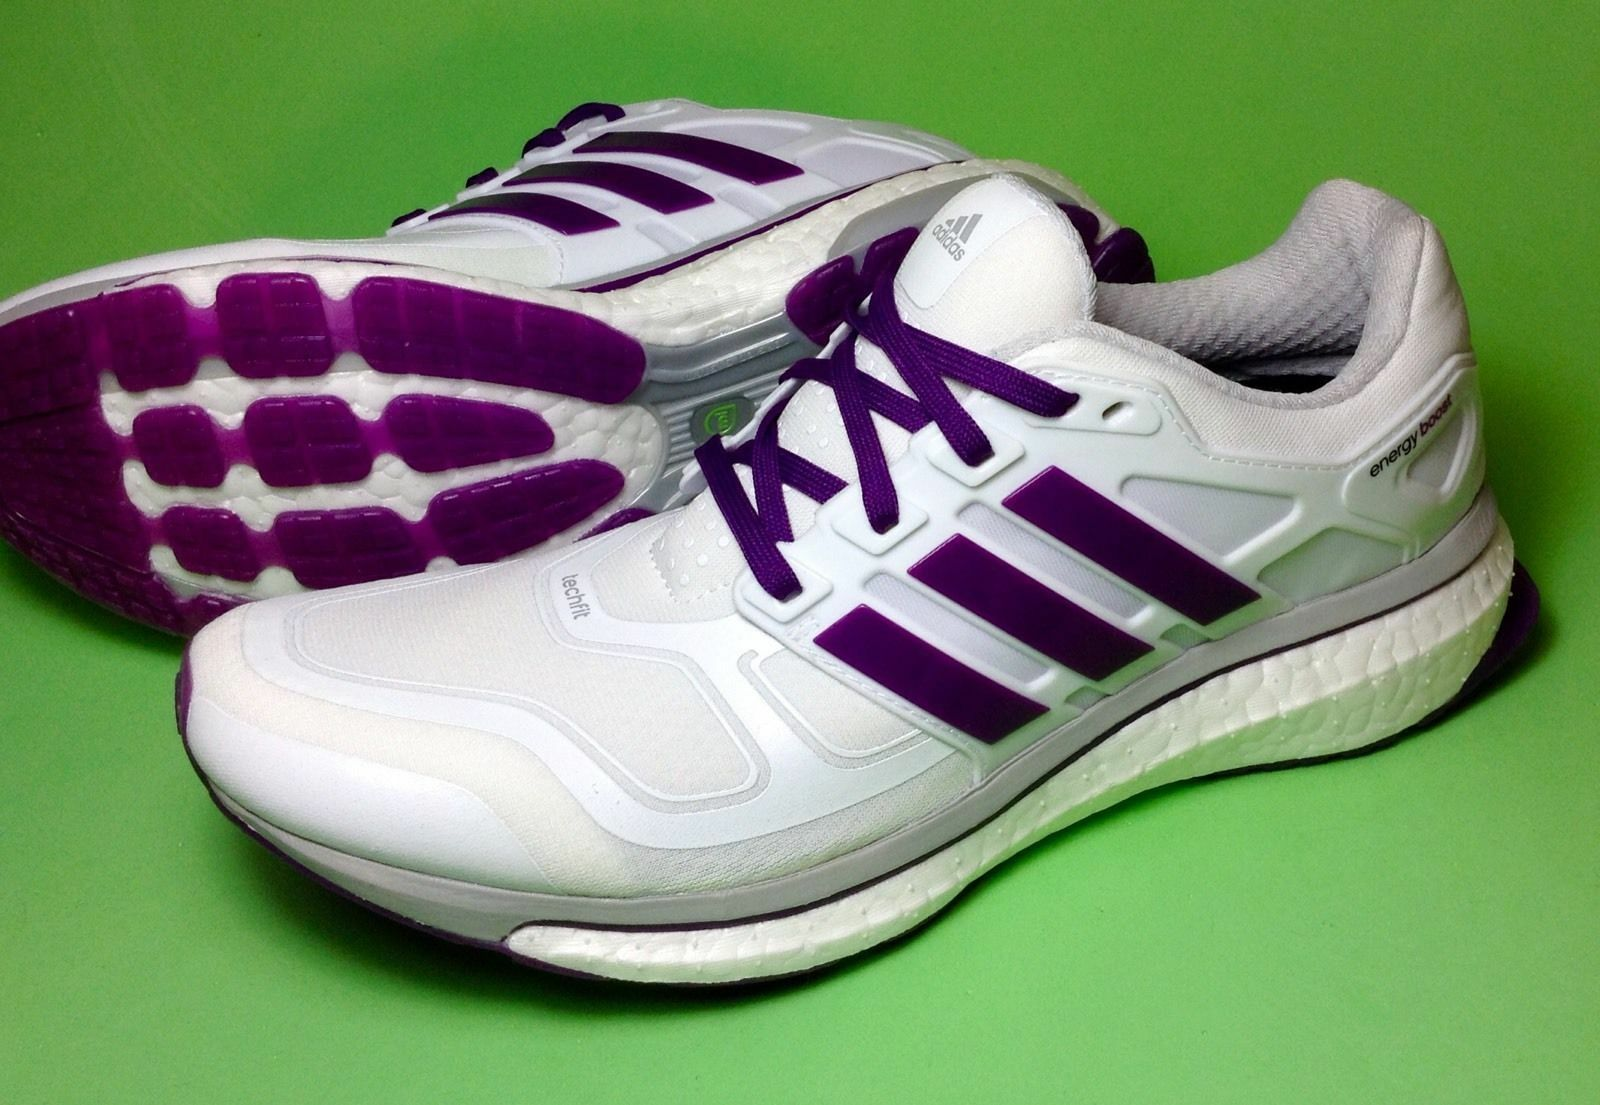 ADIDAS ENERGY BOOST 2 WOMEN'S RUNNING SHOES 100% AUTHENTIC